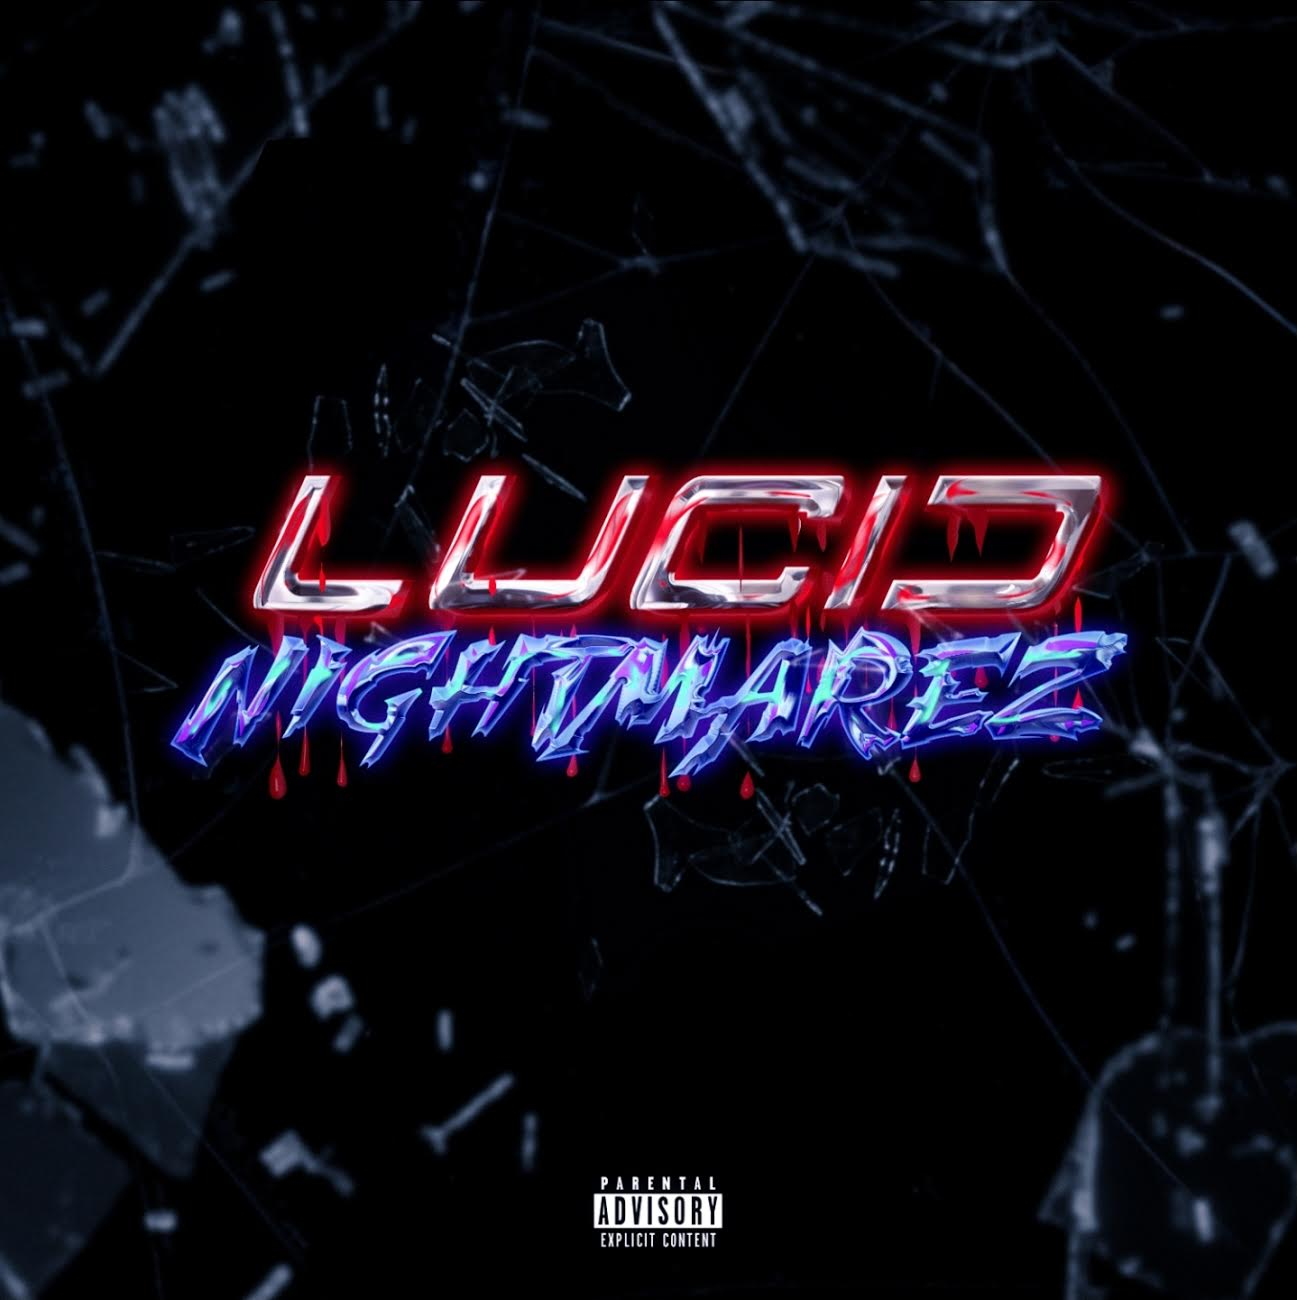 Phily Skeamz Releases New EP 'Lucid Nightmarez'